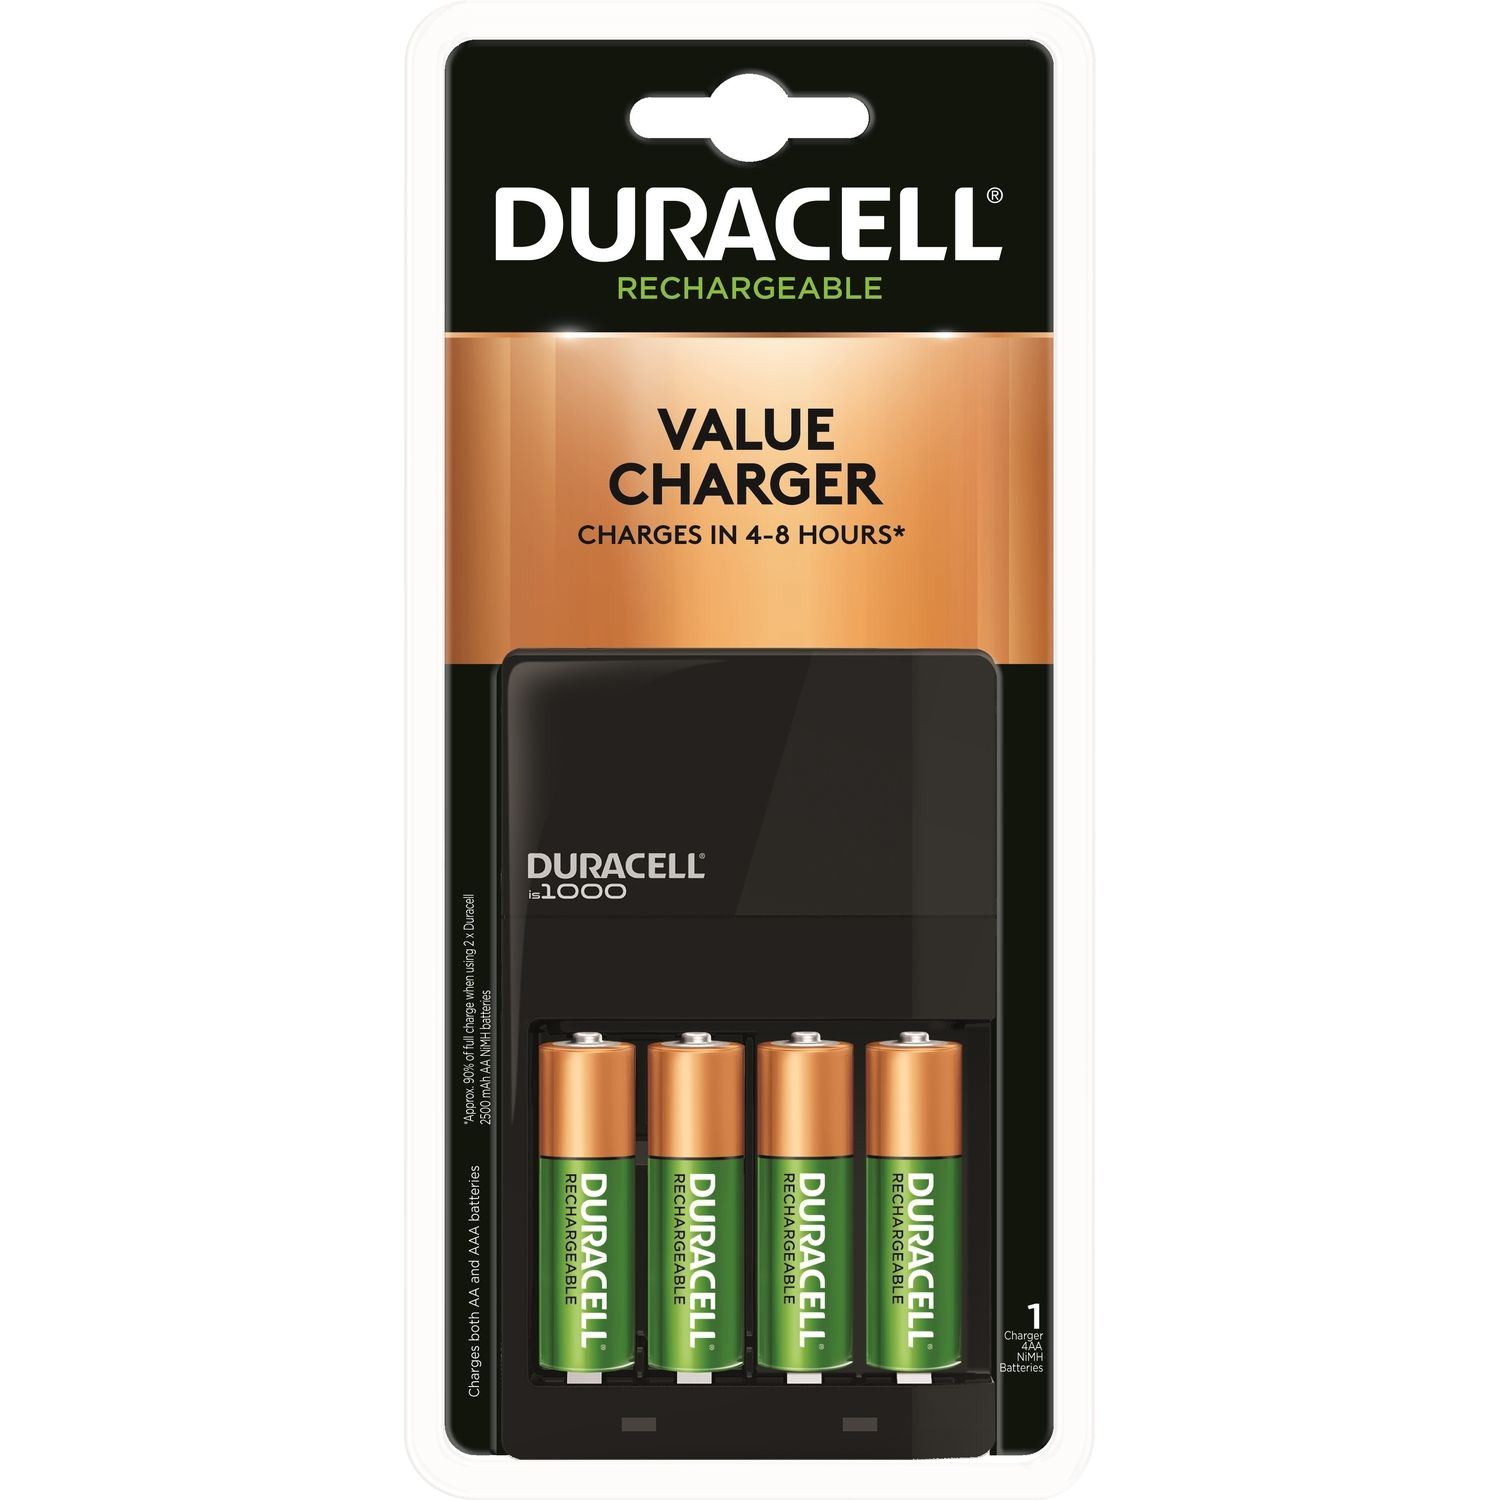 Duracell 4 Battery Rechargeable Battery Charger Rechargeable Battery Charger Aa Battery Charger Duracell